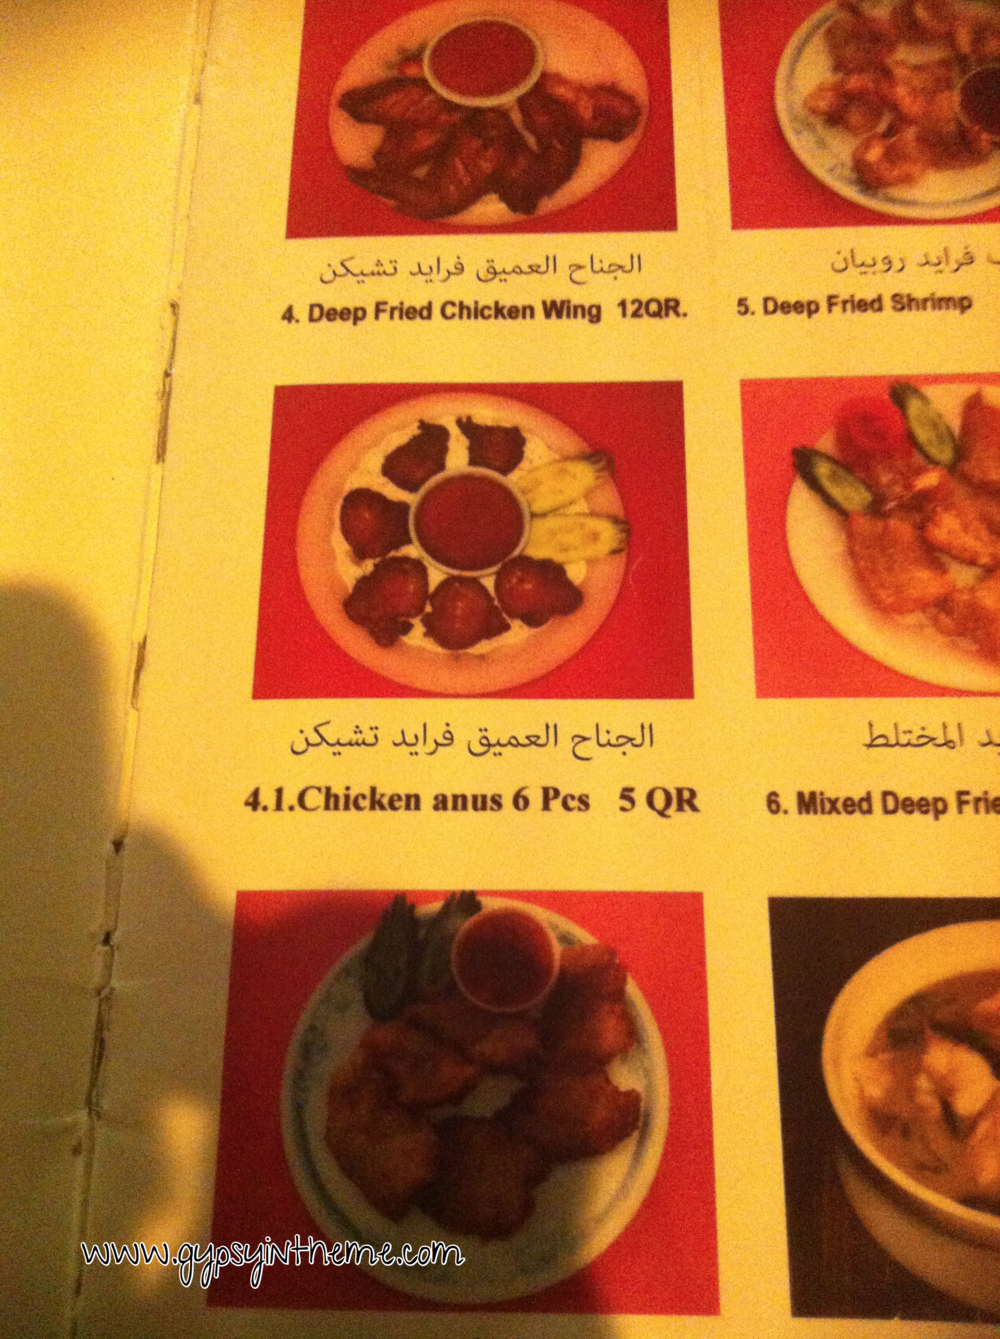 A picture of the dine-in menu, where chicken bum is displayed prominently (see item # 4.1).  But at 5 QAR (+/- $1.50), it's a steal ...